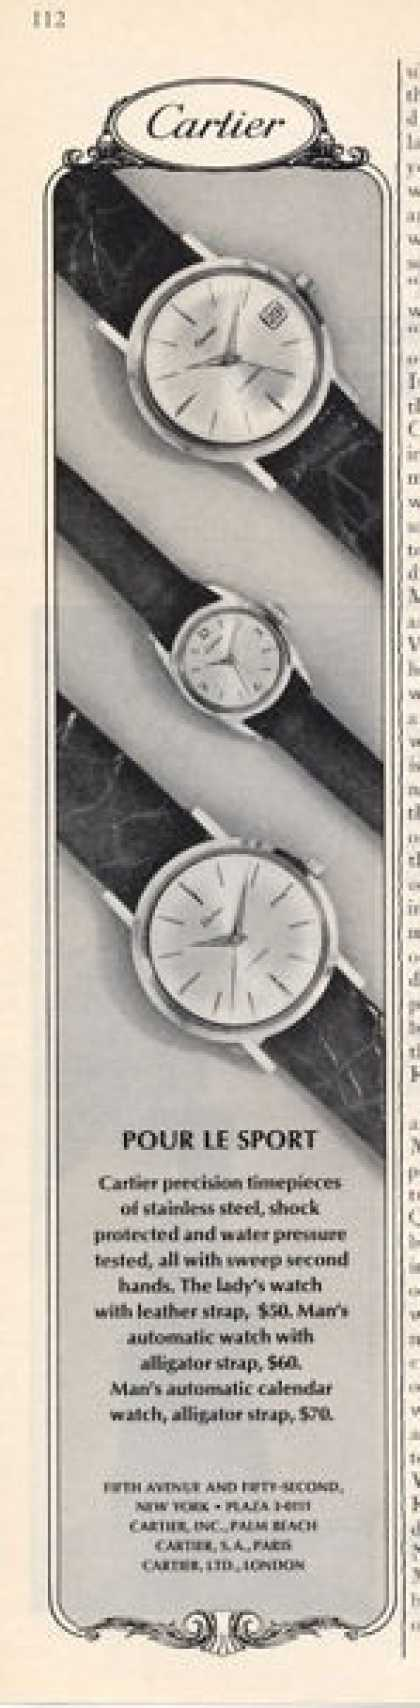 Cartier Watch Ad Three Models (1965)